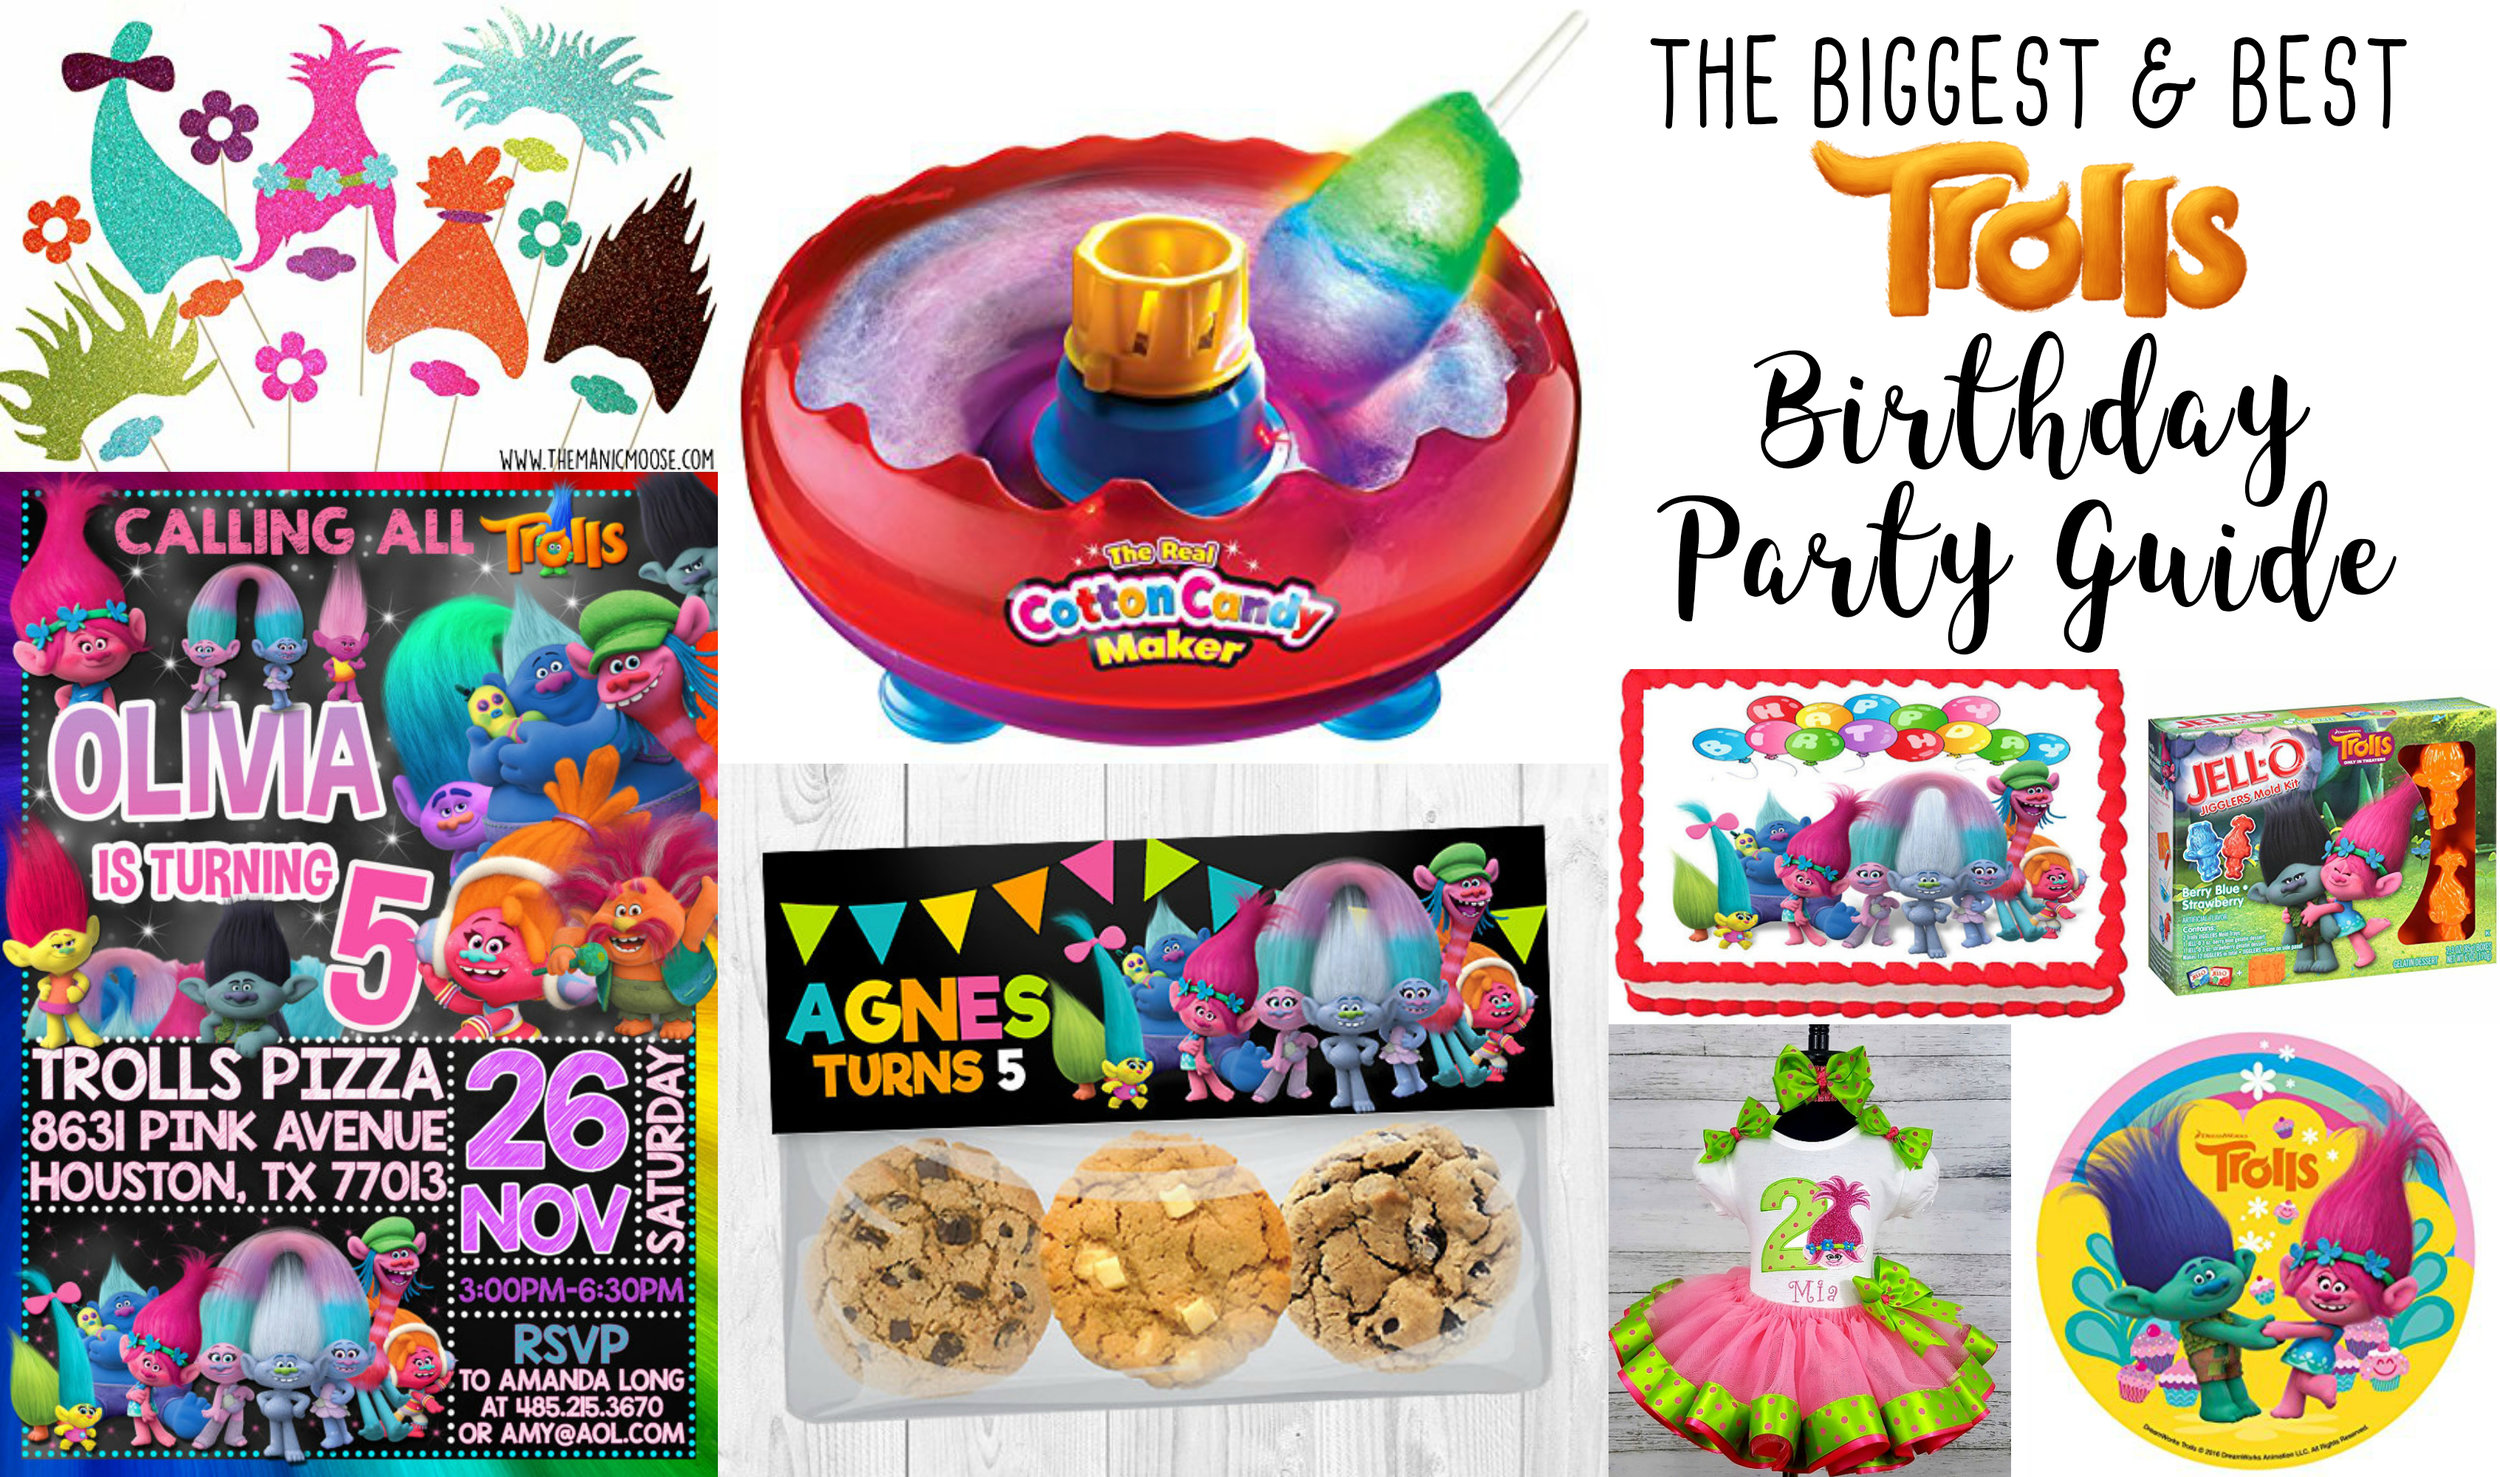 The BIGGEST And BEST Collection Of Trolls Birthday Party Ideas Ever!